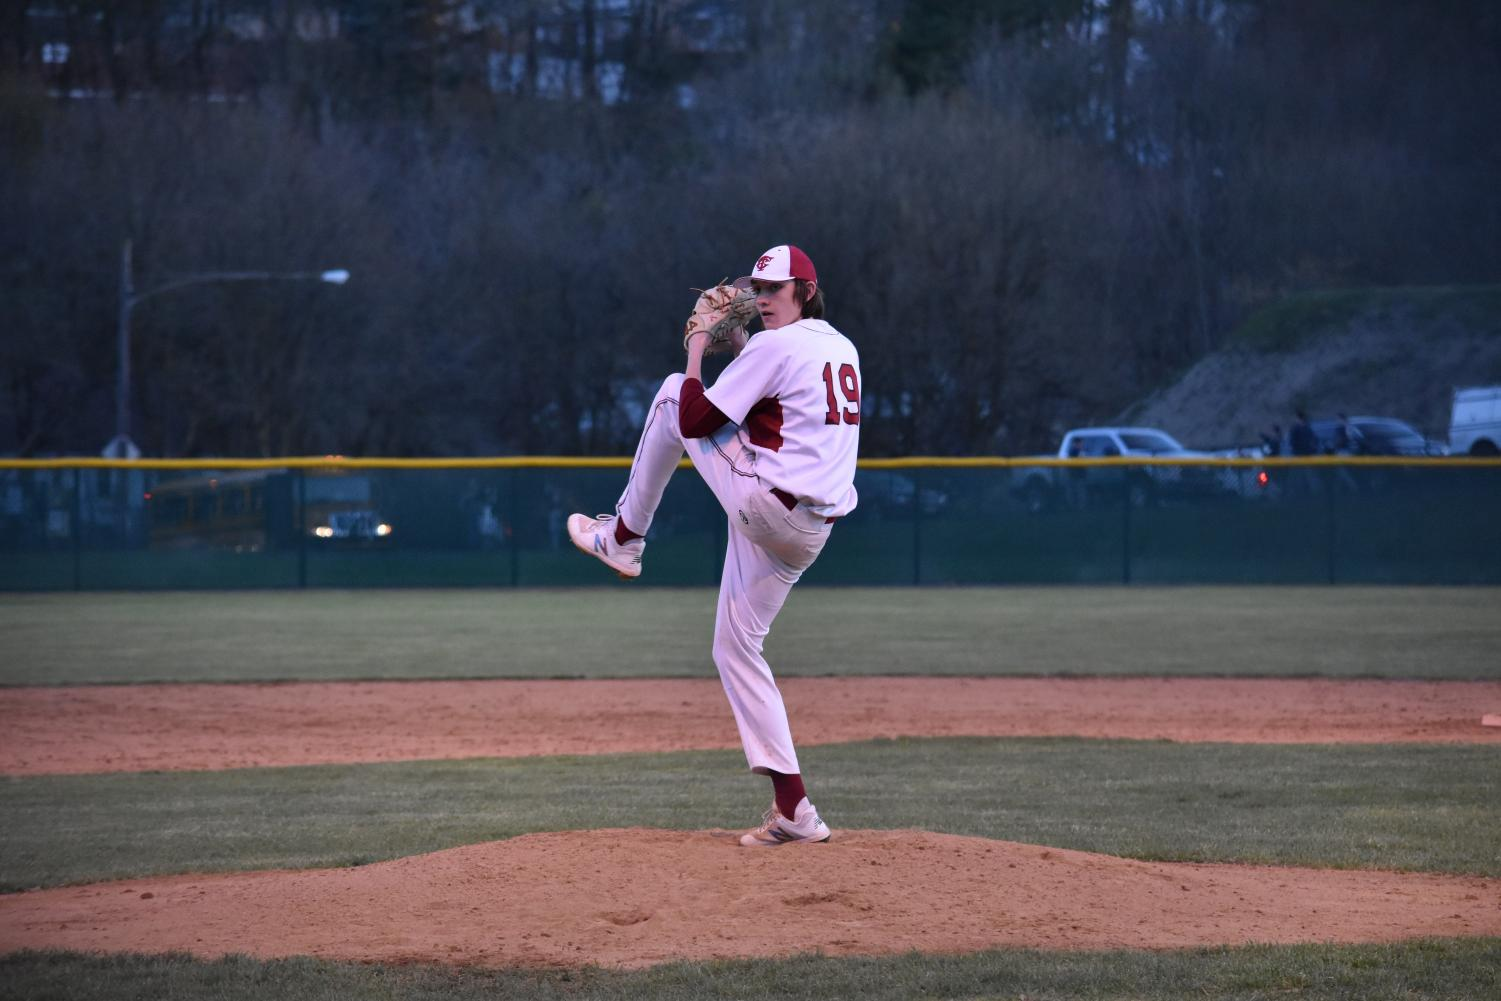 """Senior Noah Nabholz winds up to fire a pitch during a game at Steidle Field. Nabholz and five other seniors have committed to college to play a sport. """"I chose Shippensburg because they showed the most interest in me. The coaches were always calling and texting me, asking how I was doing,"""" Nabholz said."""